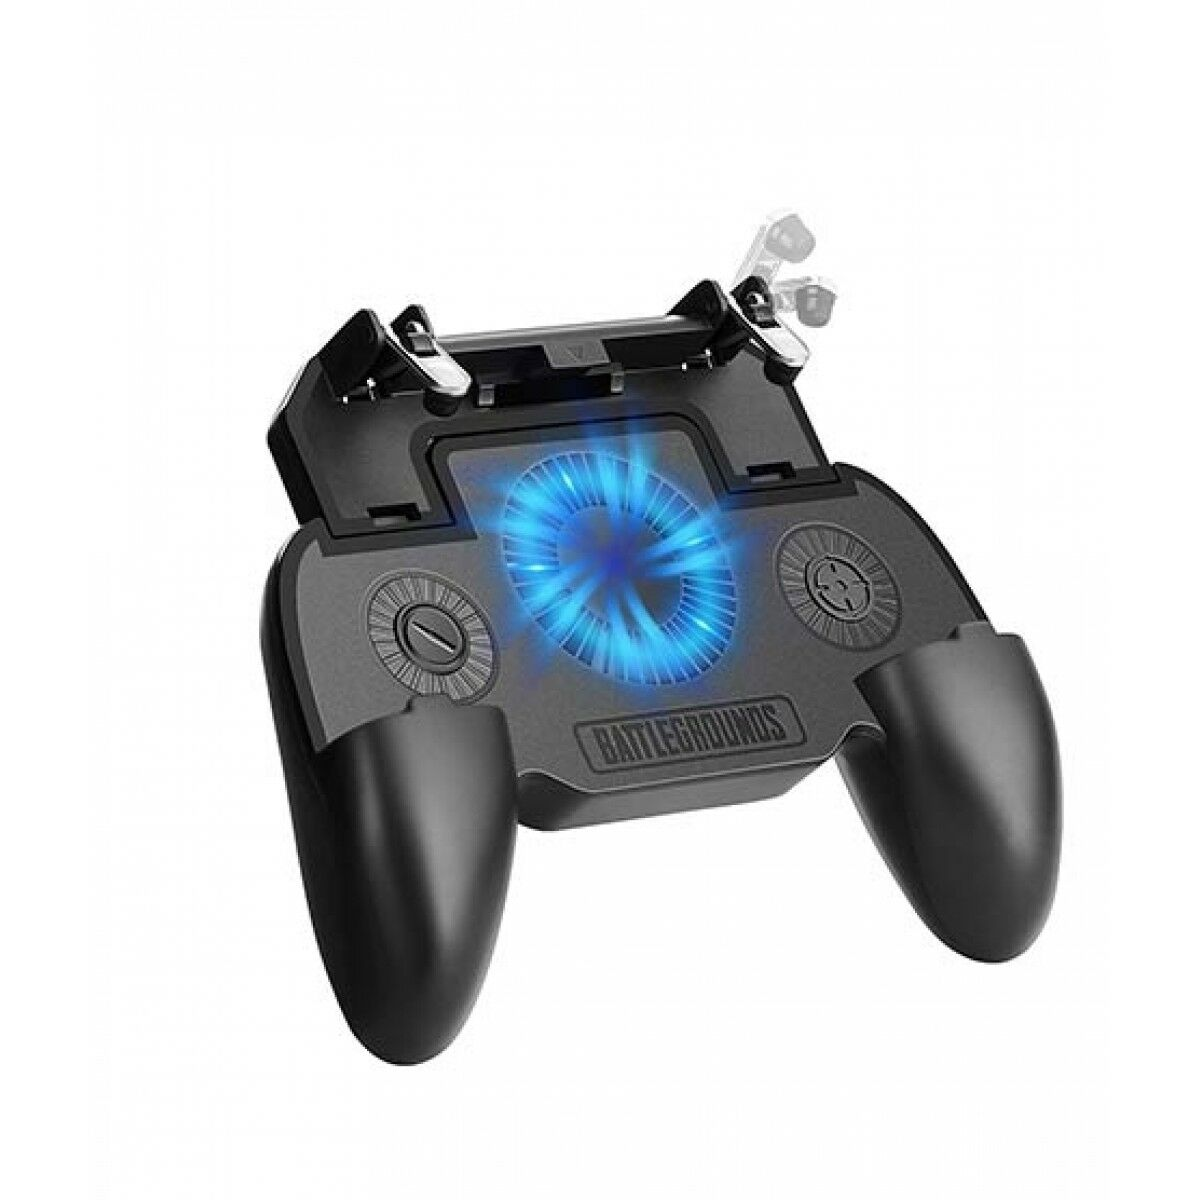 Portable Gamepad Game Controller For Mobile